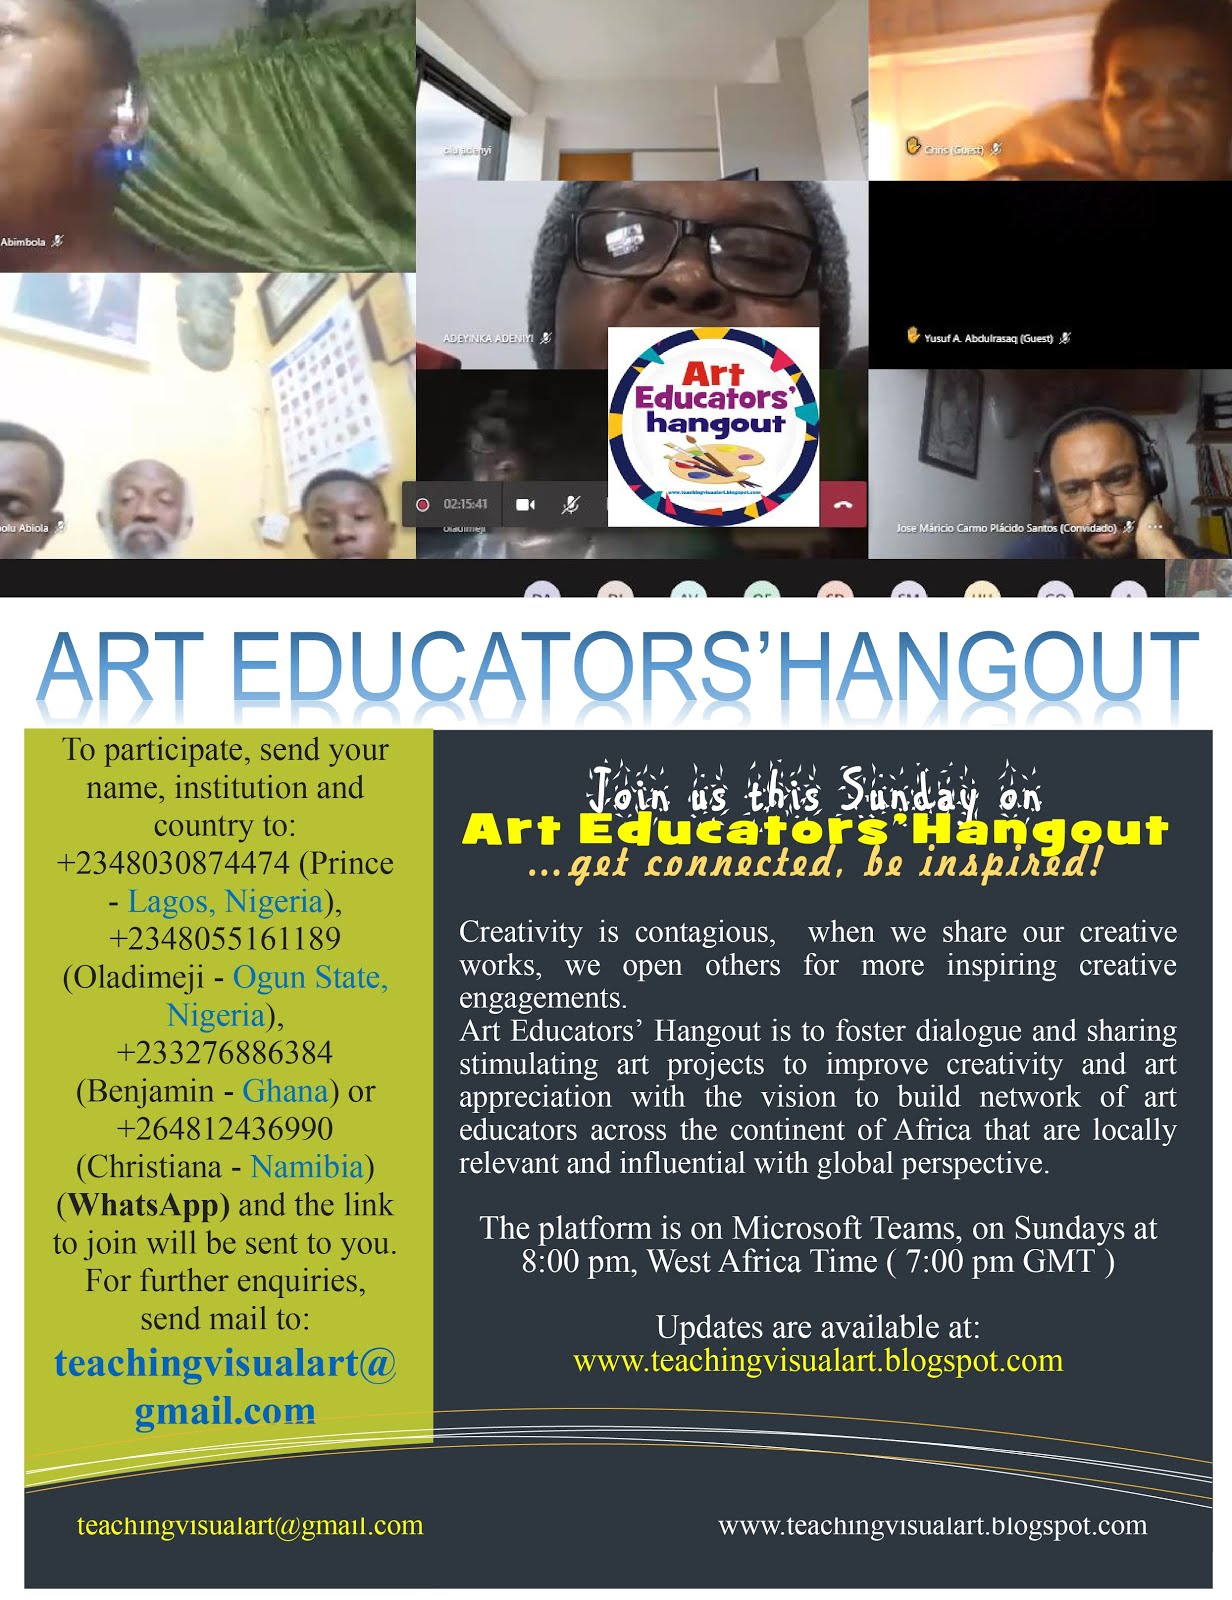 Watch the past editions of the Art Educators' Hangout on YouTube...